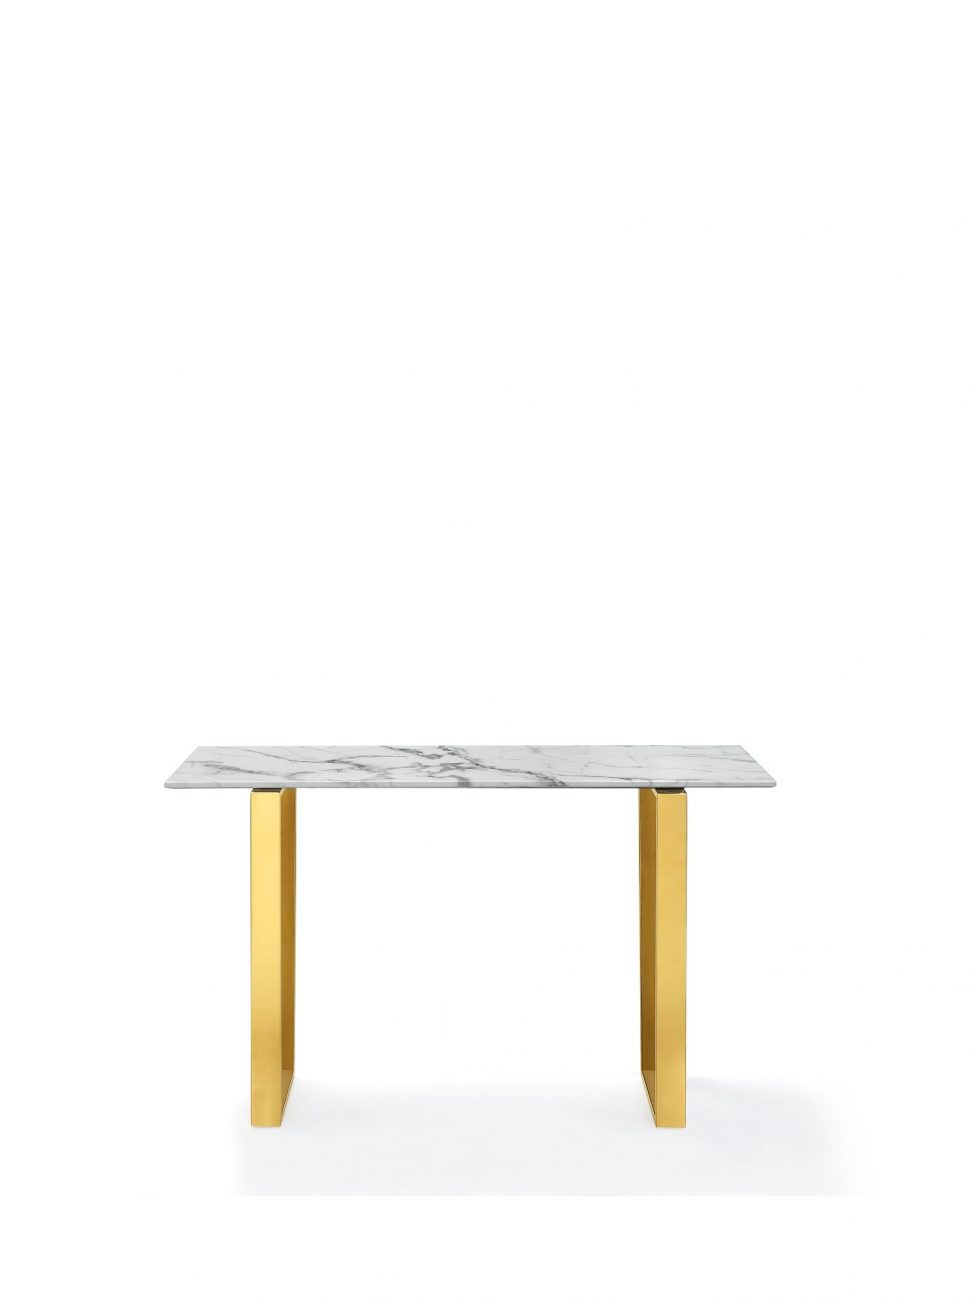 marble console table Gold Legs